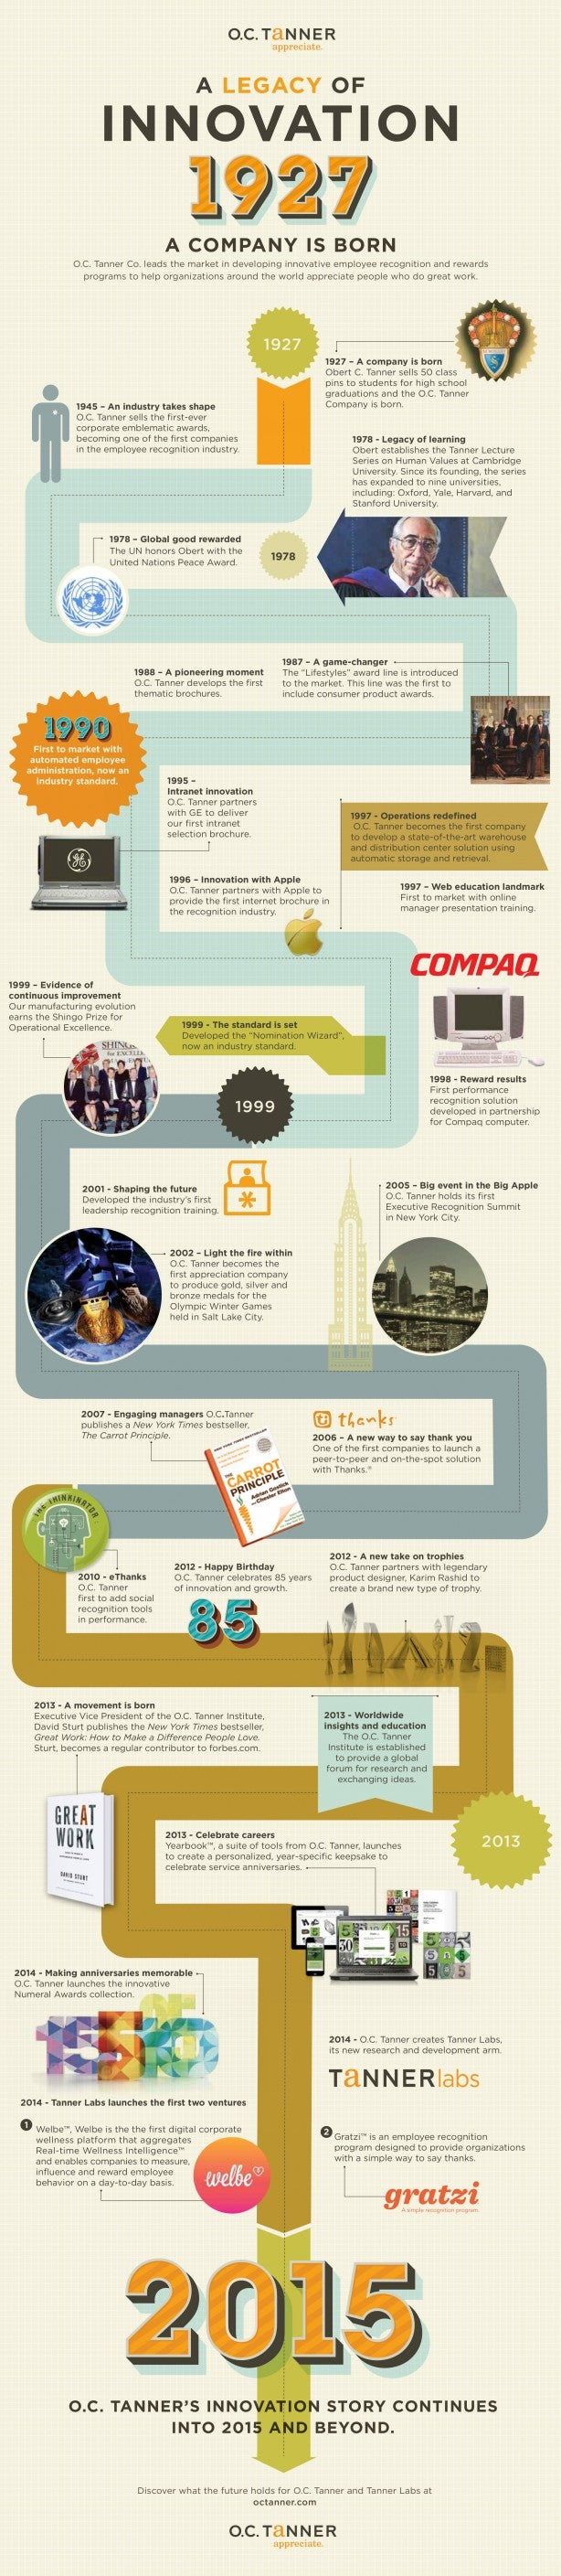 2014_OCT History of Innovation Infographic